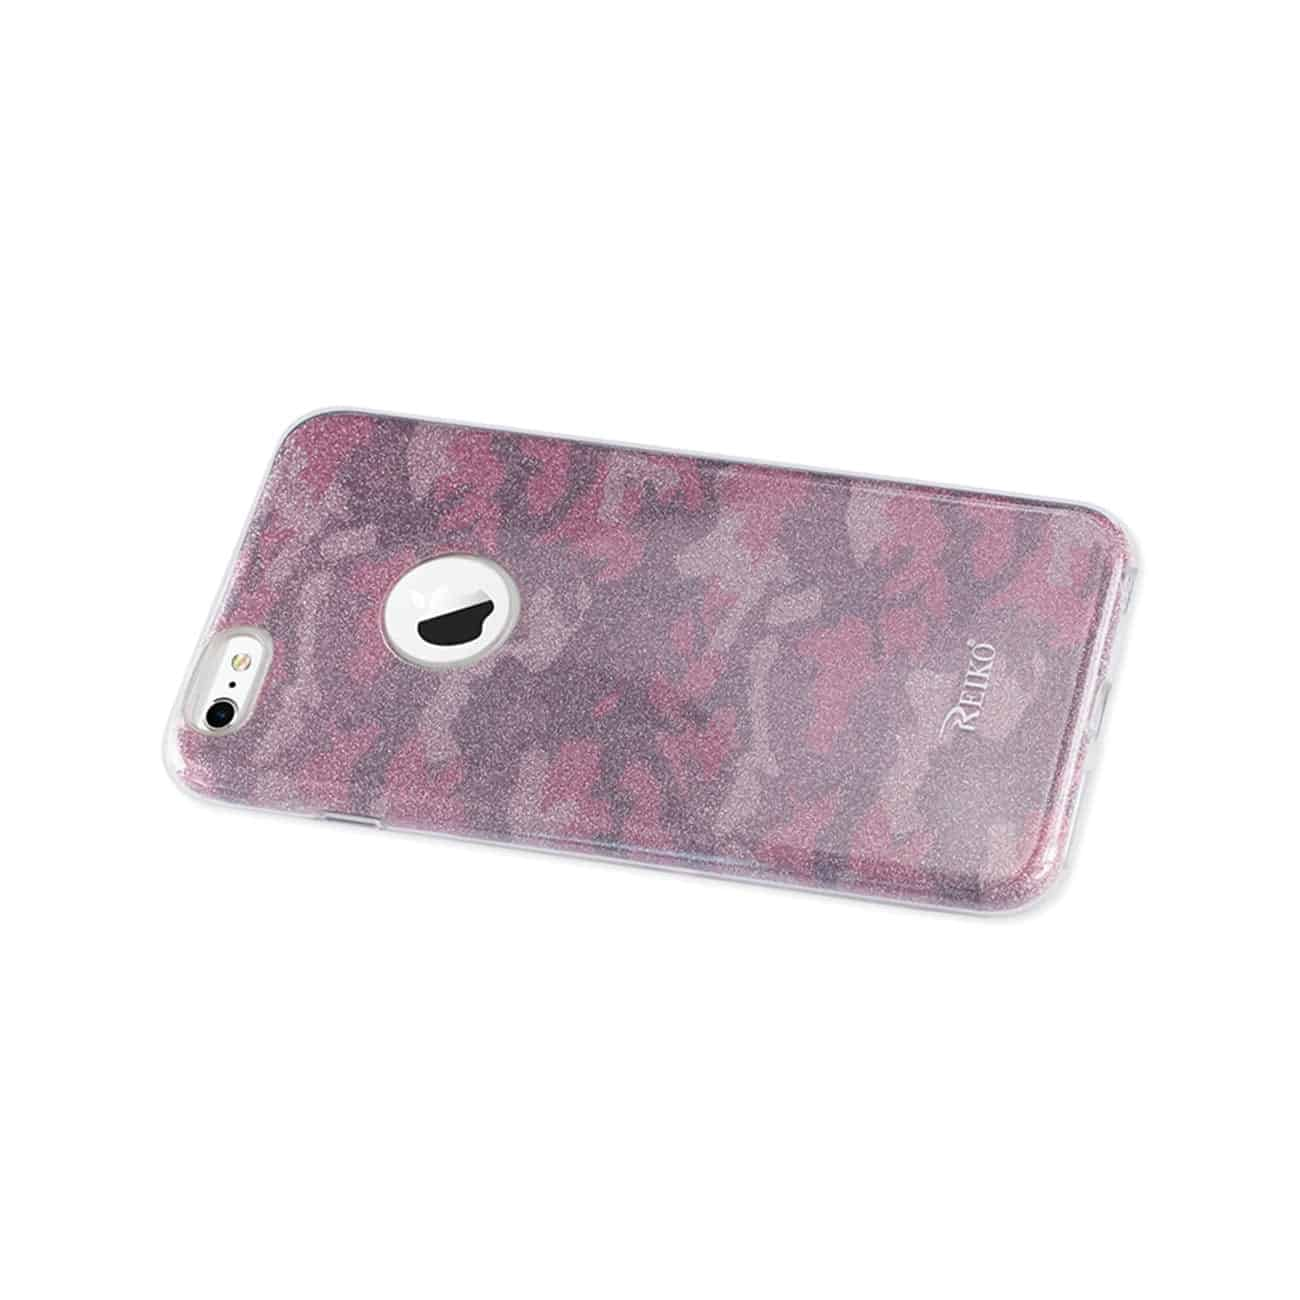 IPHONE 6 PLUS/ 6S PLUS SHINE GLITTER SHIMMER CAMOUFLAGE HYBRID CASE IN CAMOUFLAGE HOT PINK